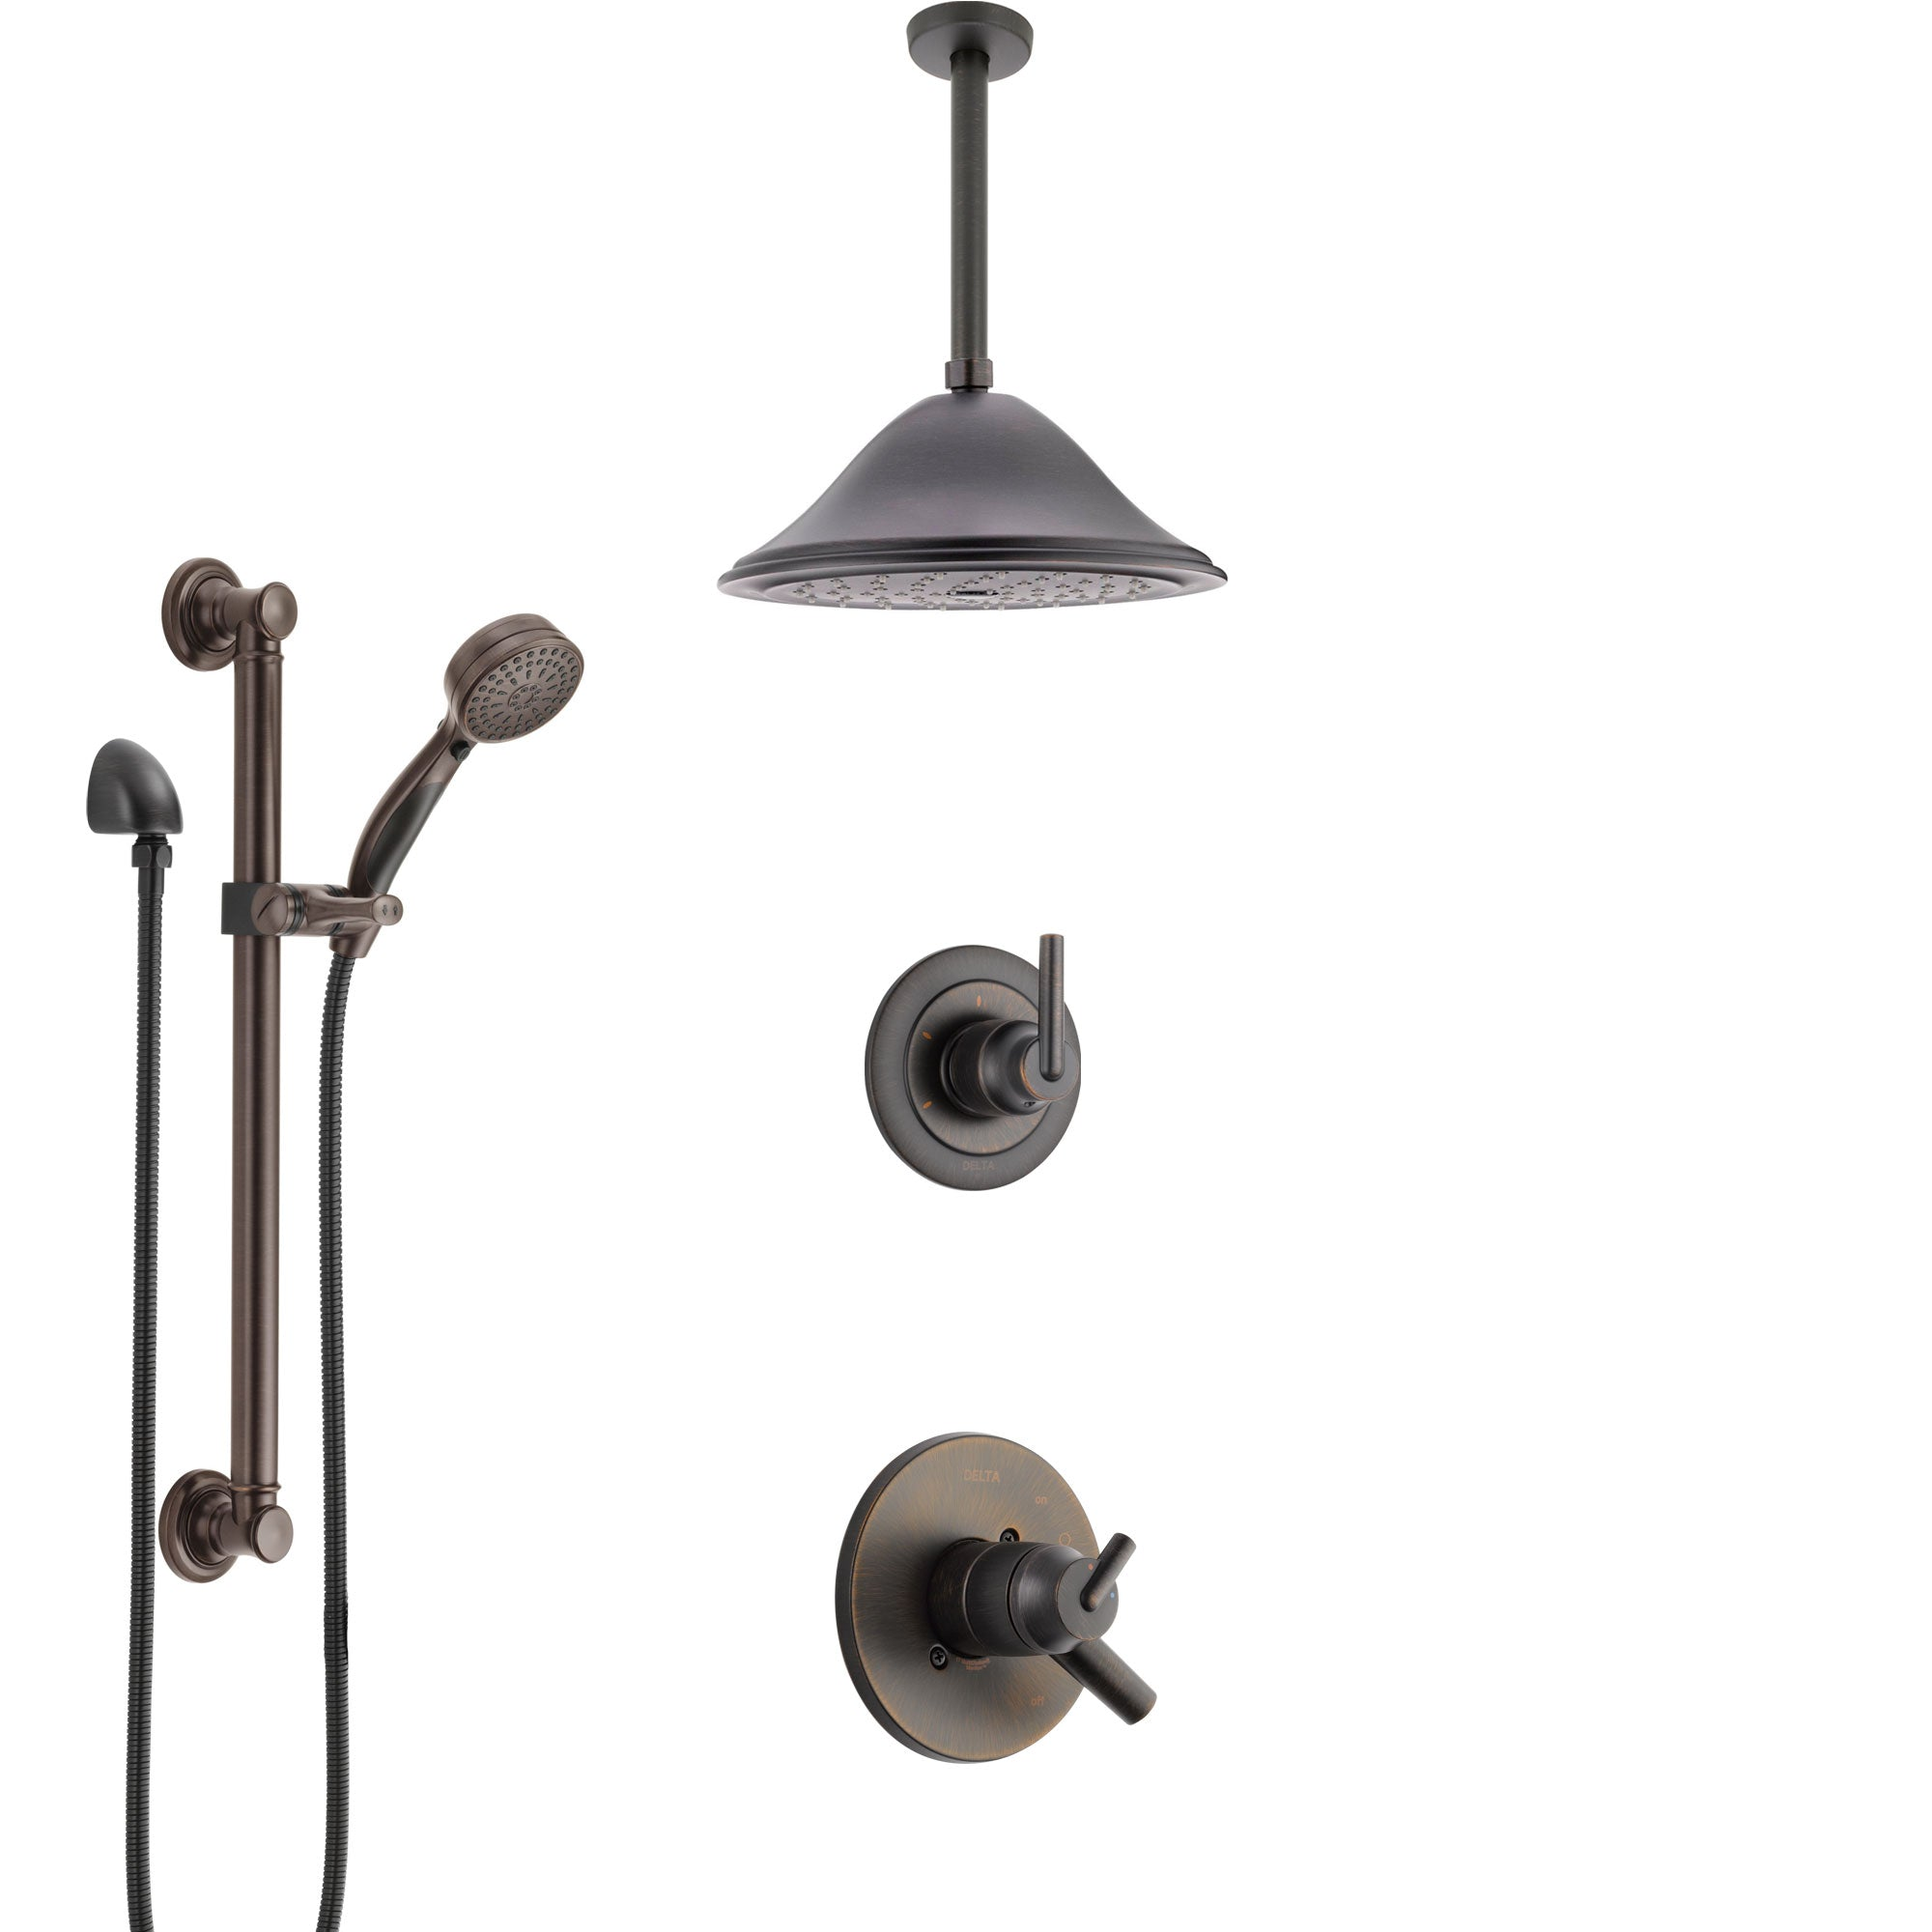 Delta Trinsic Venetian Bronze Shower System with Dual Control Handle, Diverter, Ceiling Mount Showerhead, and Hand Shower with Grab Bar SS1759RB8